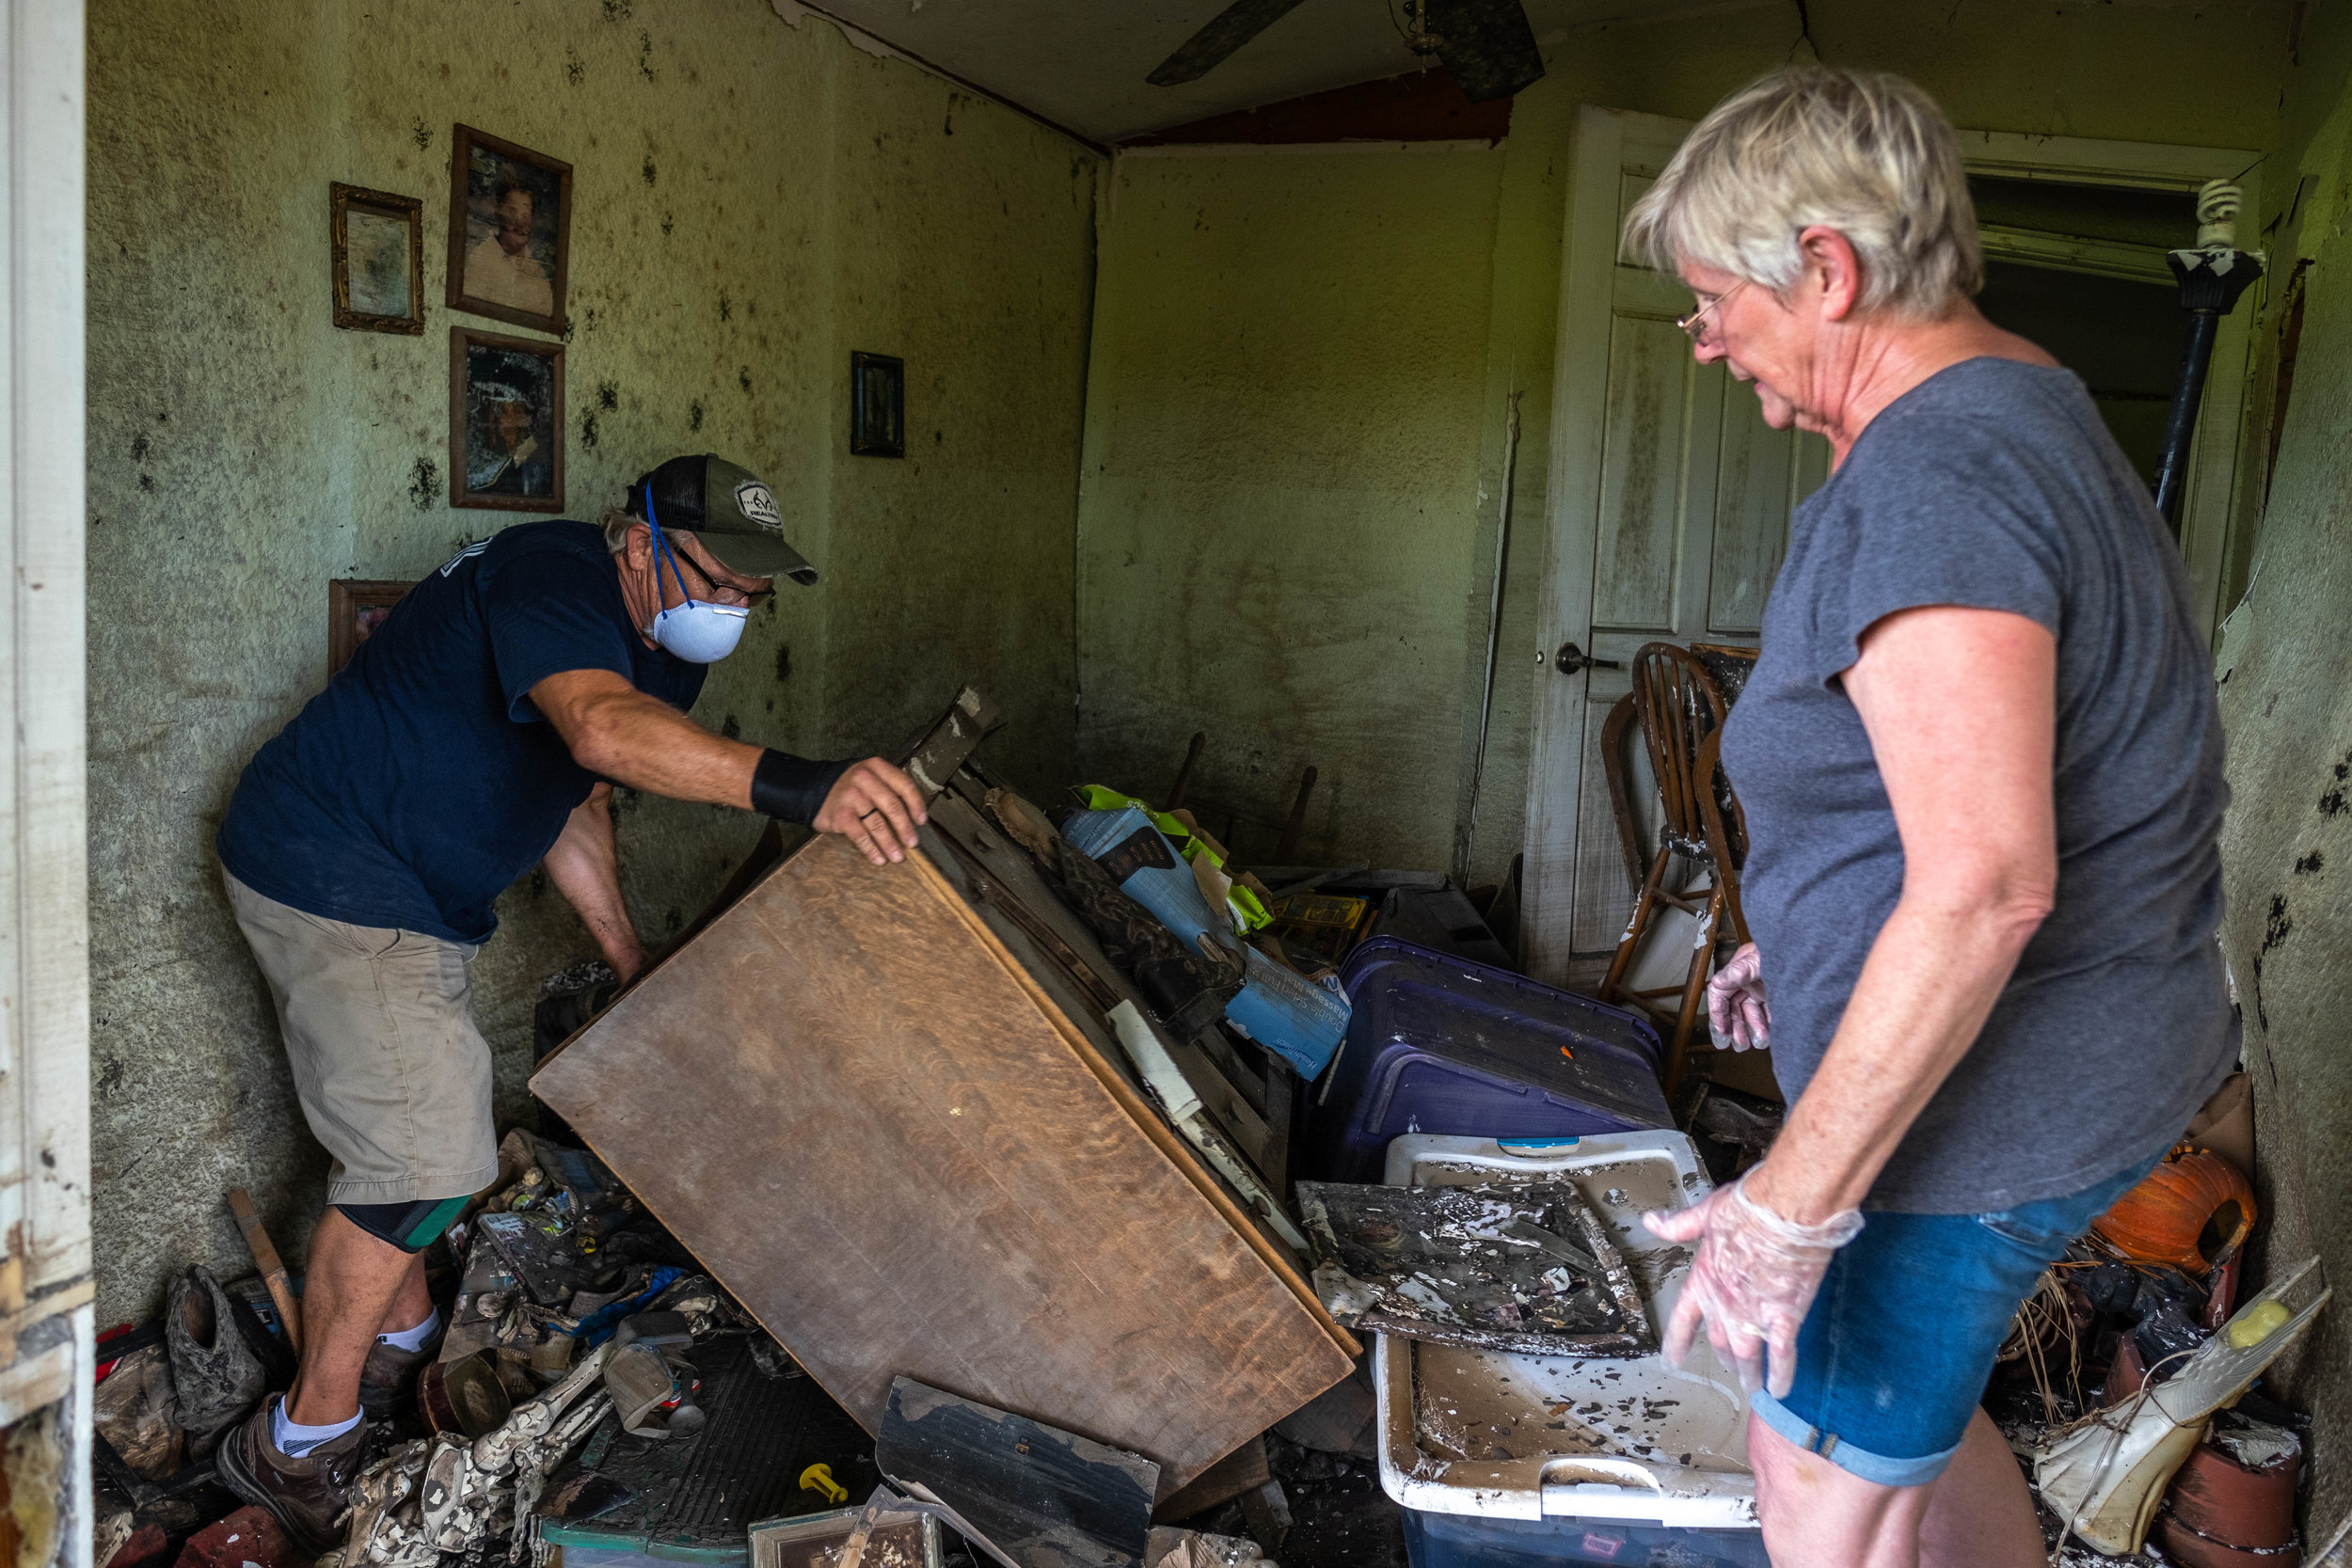 Dean and Carol sort through the remains of the house.